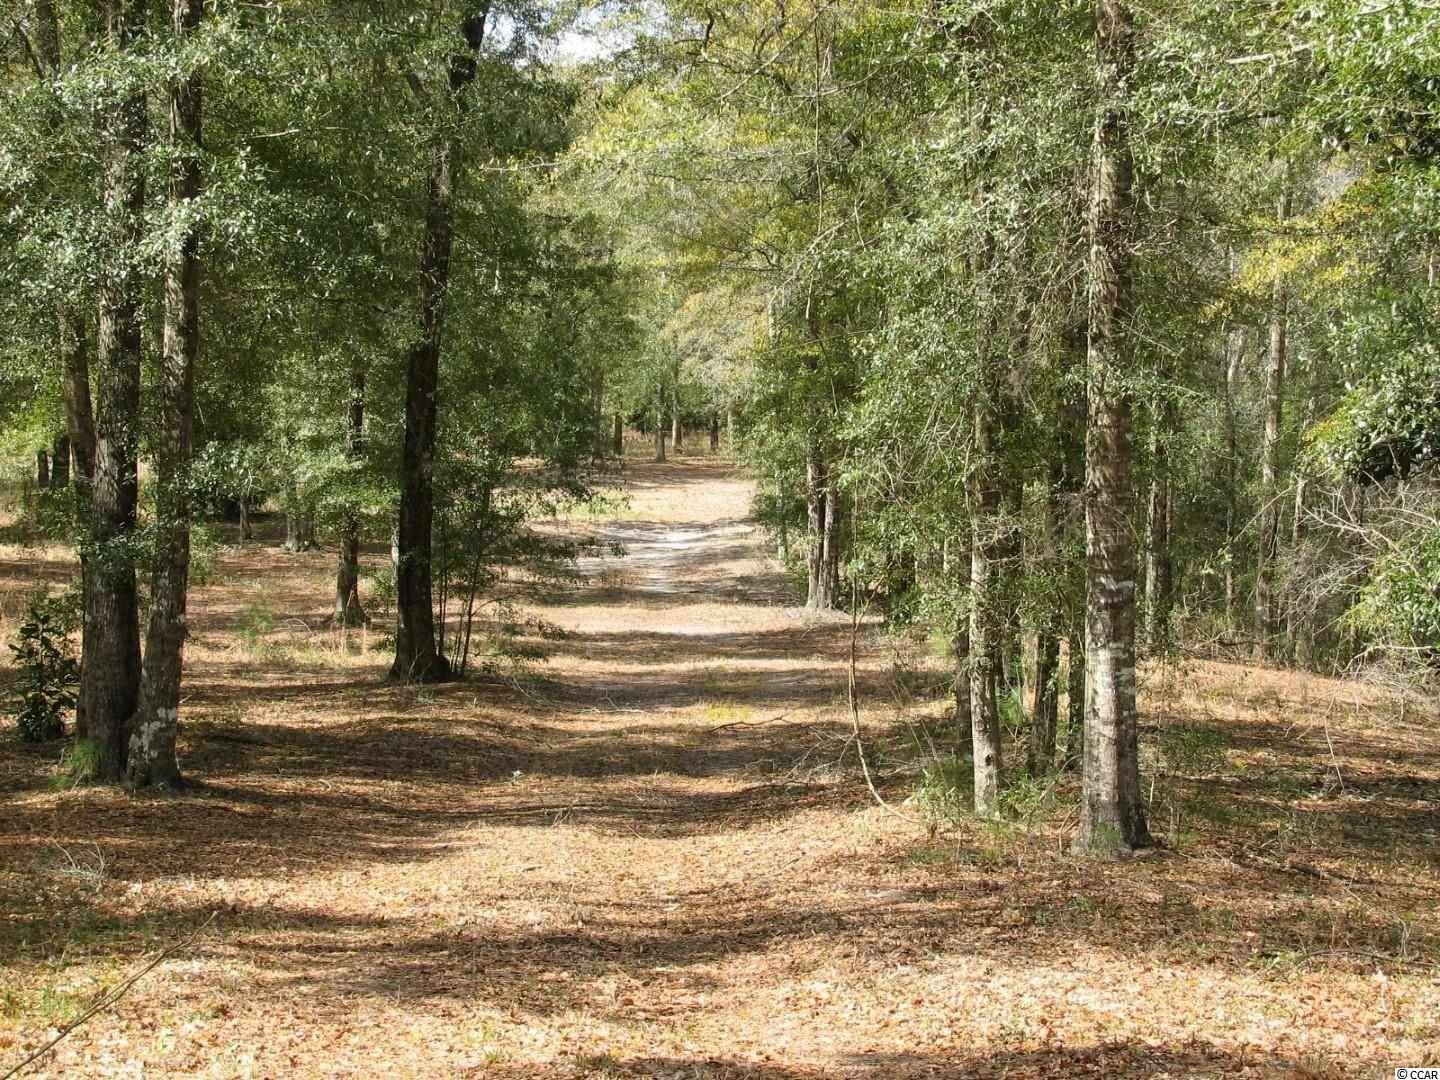 Land - 1.9 miles on Choppee Road on left hand side before you get to Peters Creek from Hwy 701 N. Nine miles from Tidelands Hospital in Georgetown, SC. Measurements are approximate and not guaranteed. Buyer responsible for verification.